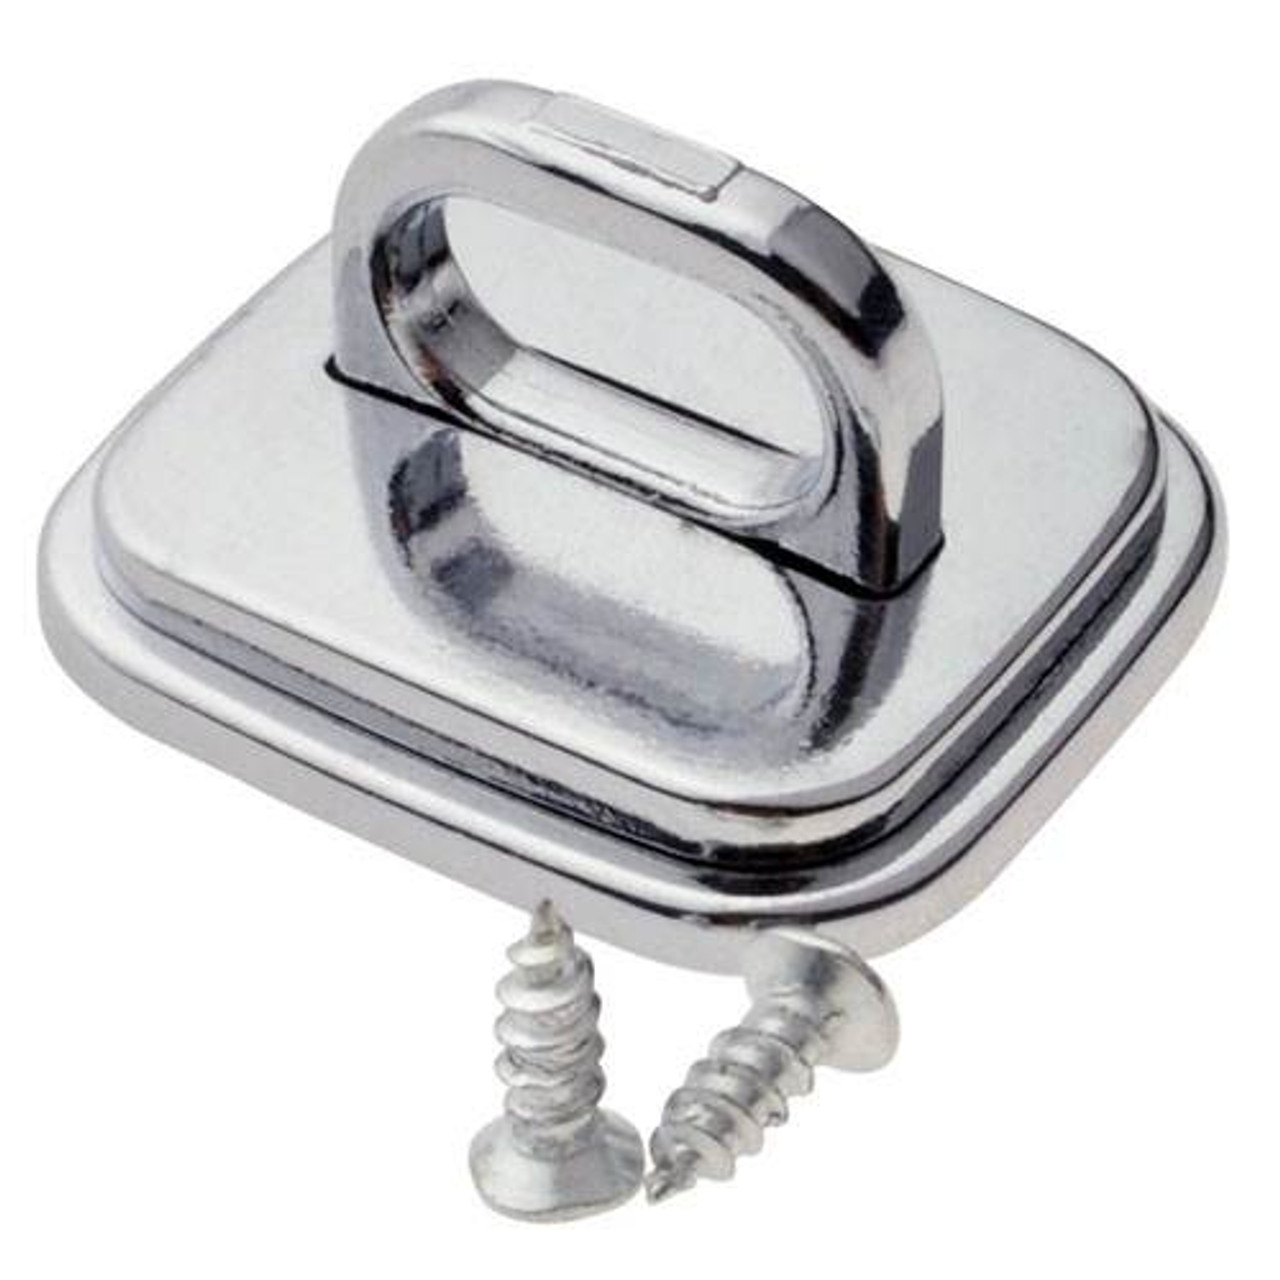 Image for Targus DEFCON Security Anchor Base Plate - Silver - PA400P CX Computer Superstore